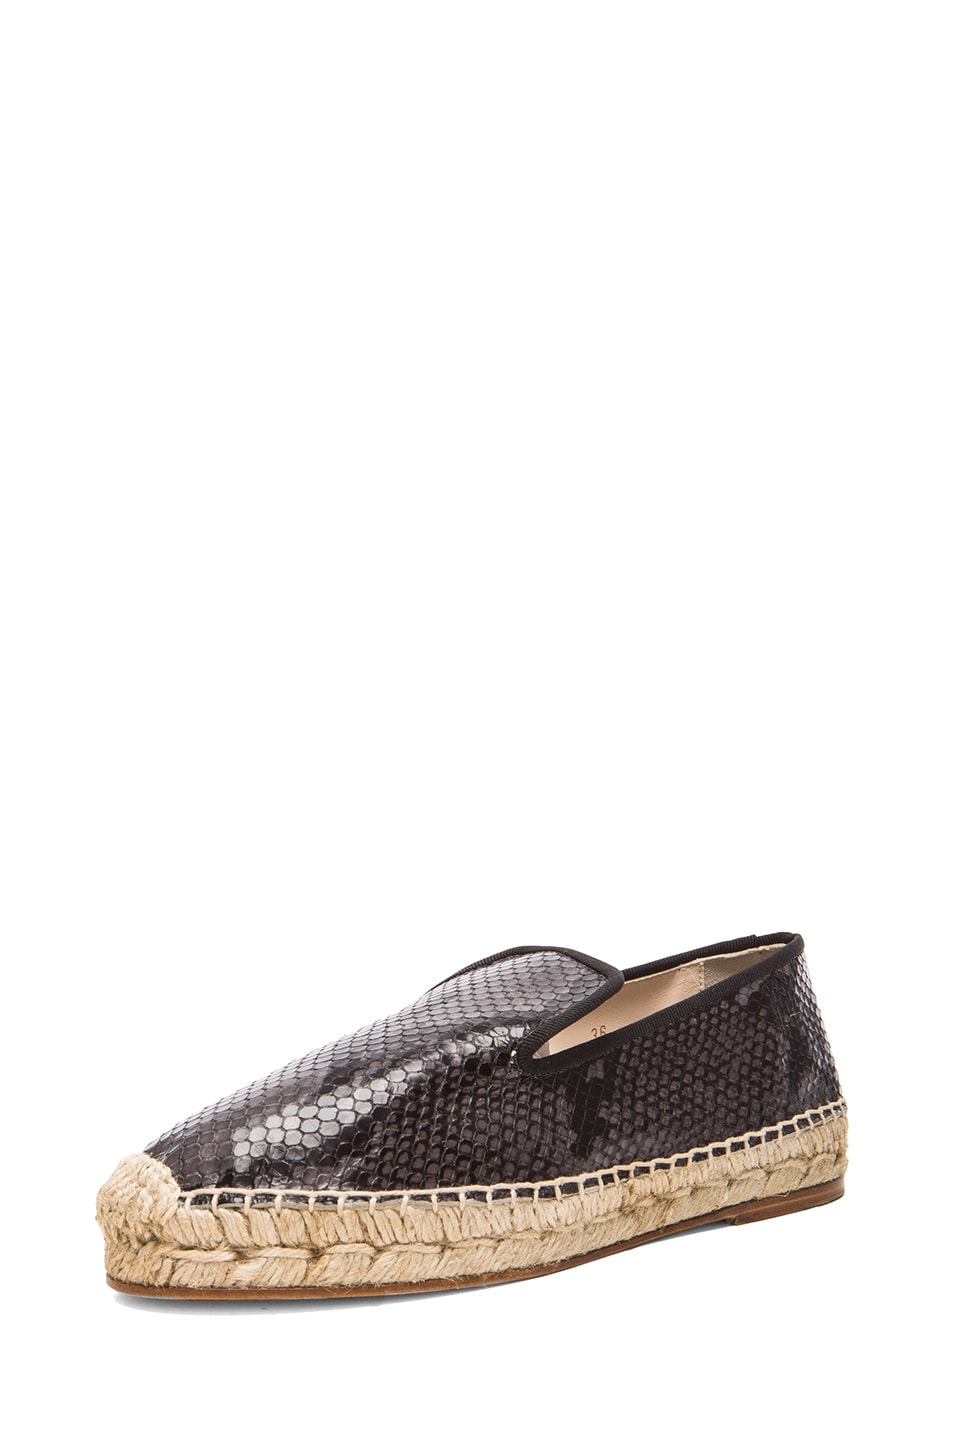 Image 2 of elysewalker los angeles Python Printed Leather Espadrilles in Grey